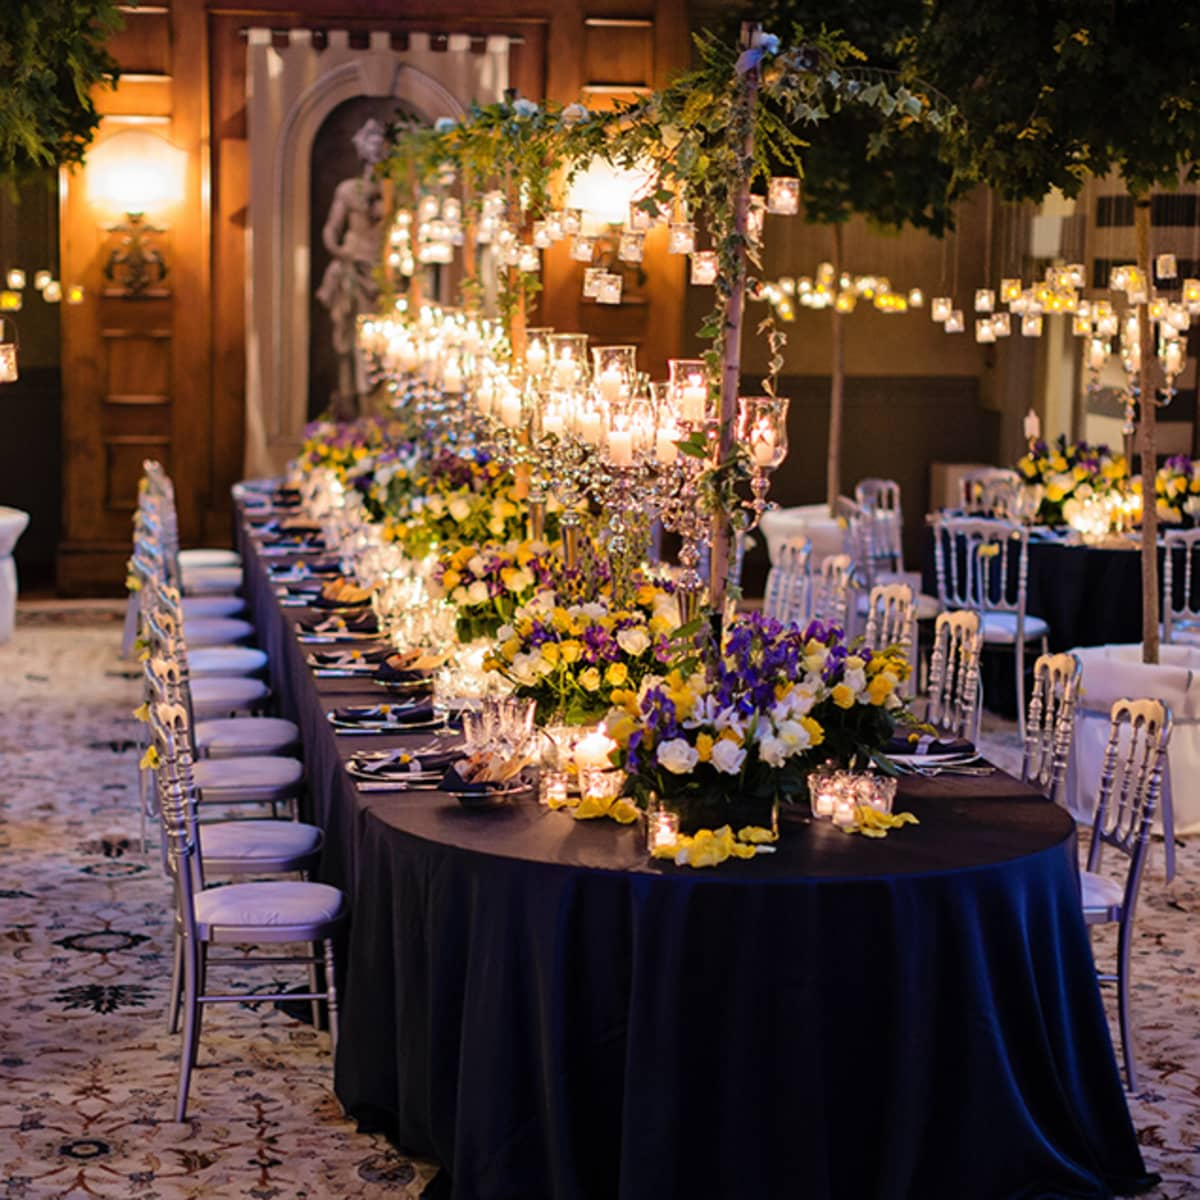 Flowers And More Than 2000 Candles Decorate The Reception Space Its Immaculate Tables